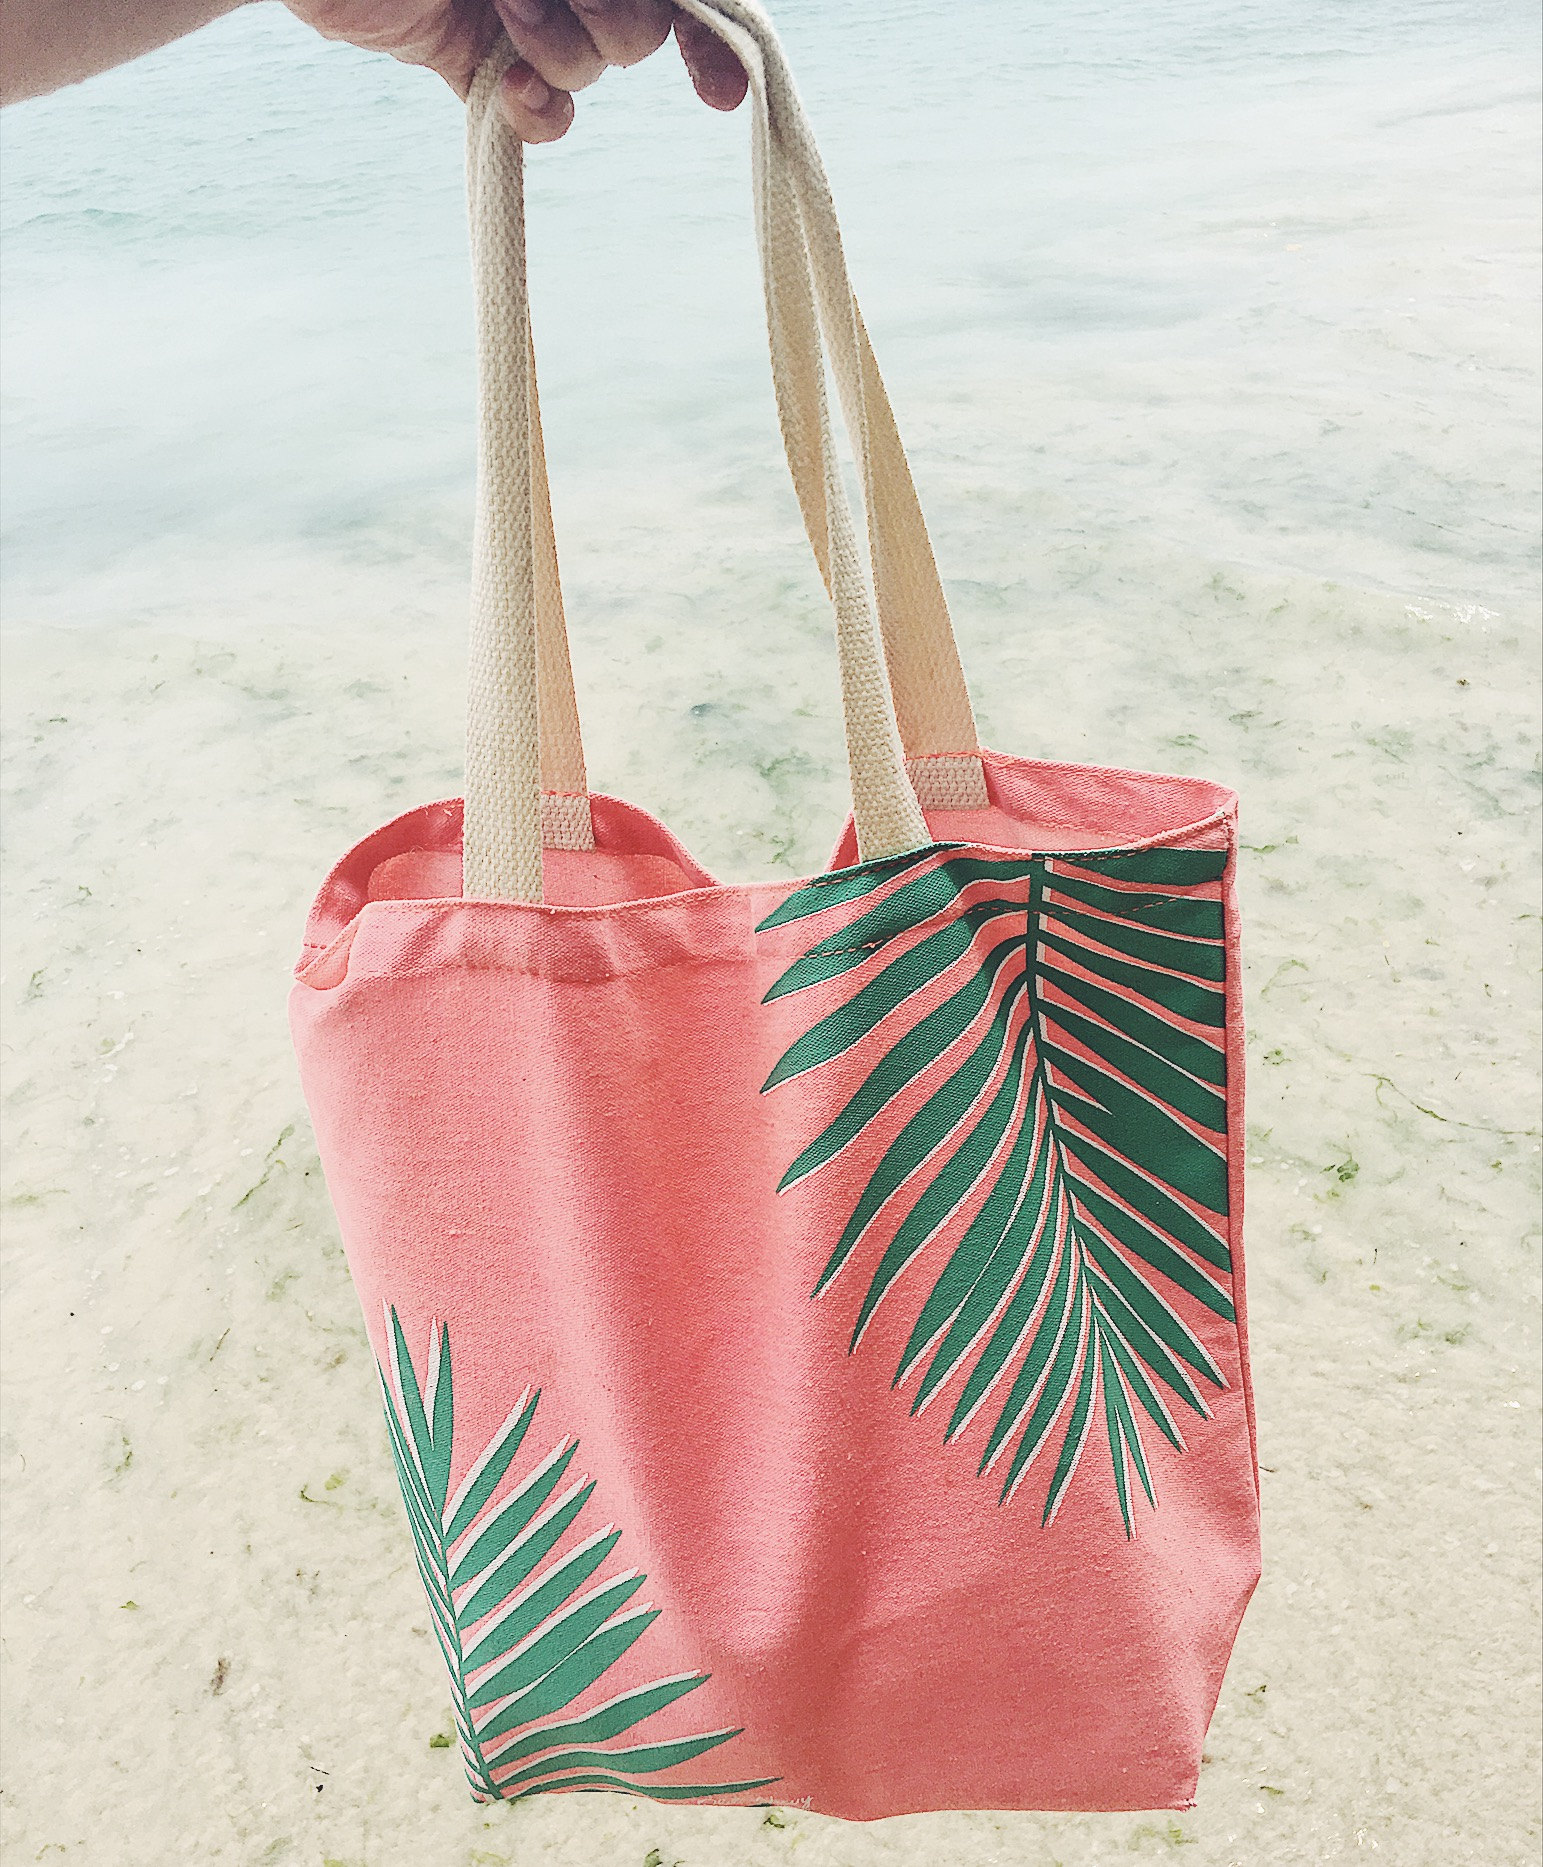 Canvas tote bag from Old Navy. Exact print sold out, but some other great summer options below! Most are less than $10 and perfect for the beach or pool!